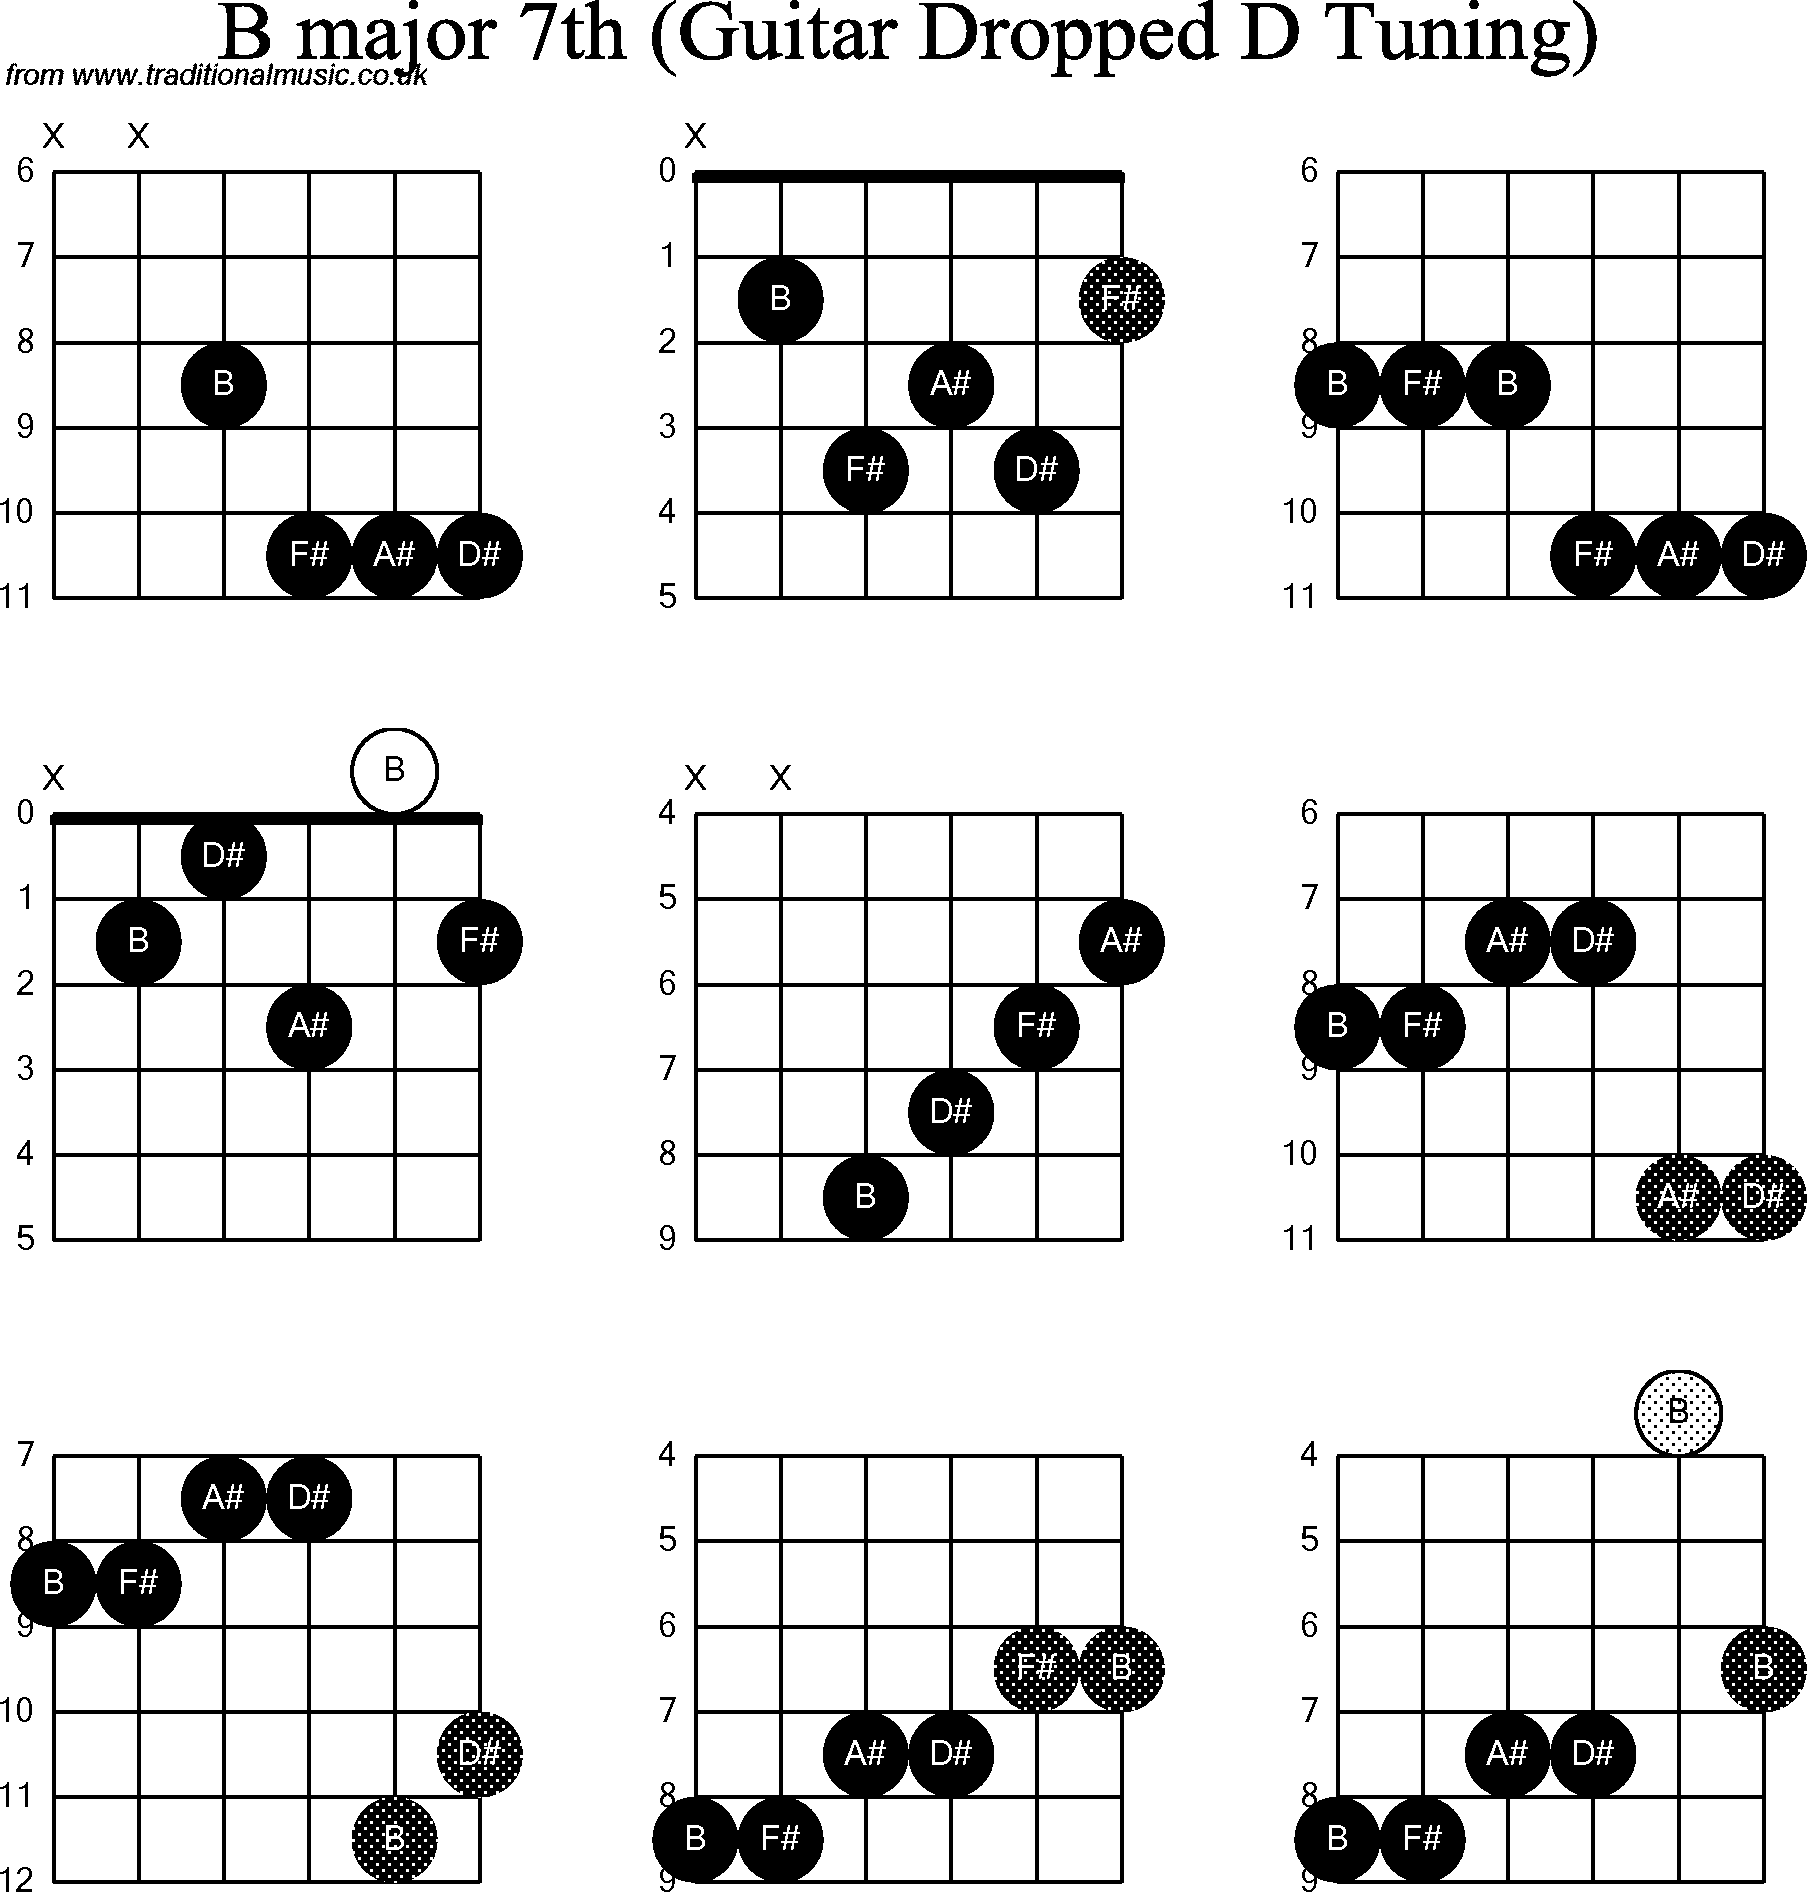 Chord Diagrams For Dropped D Guitardadgbe B Major7th